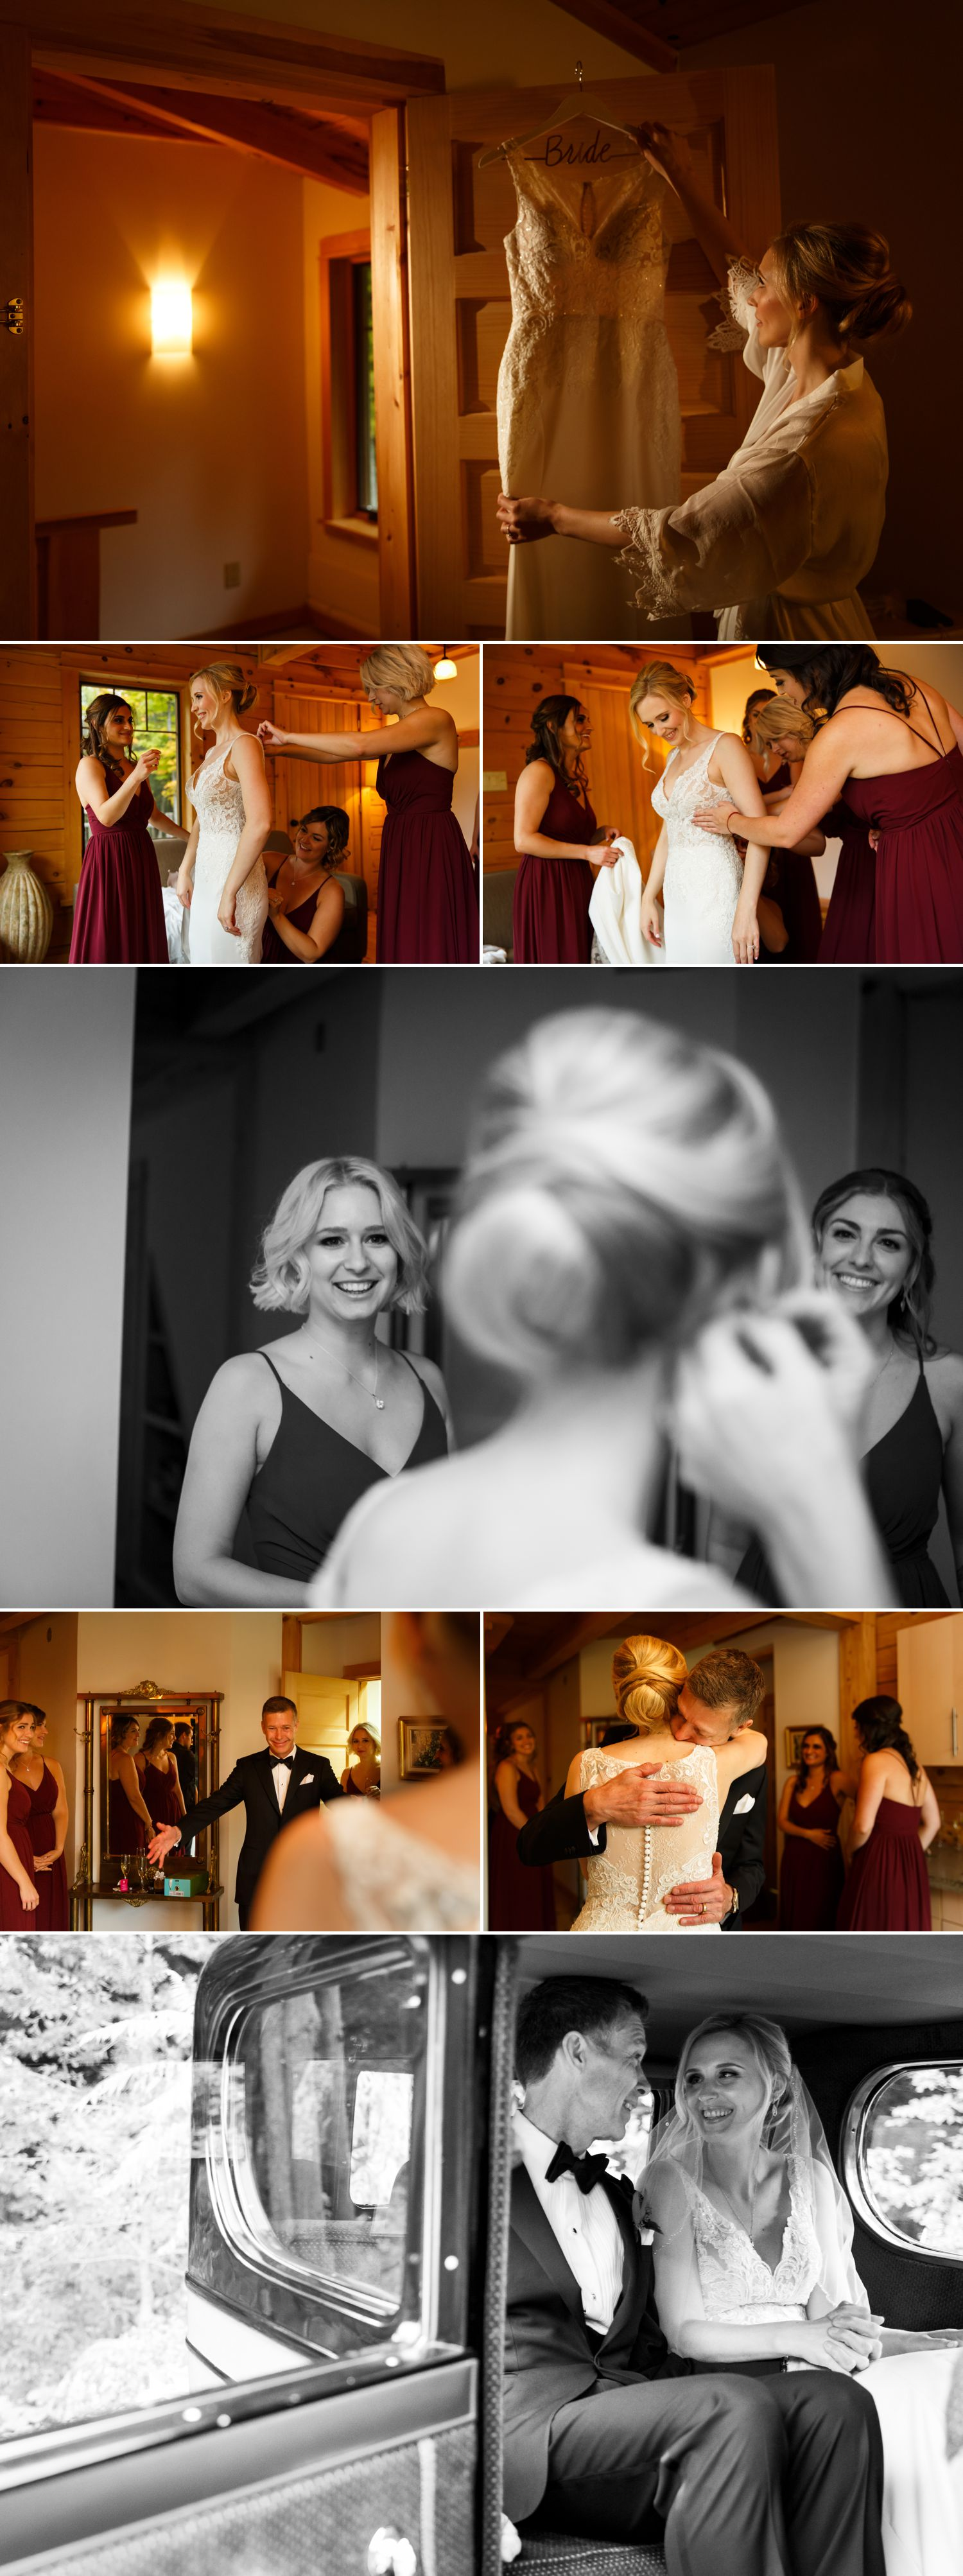 The bride with her bridesmaids and family getting ready at the guest house at Le Belvedere